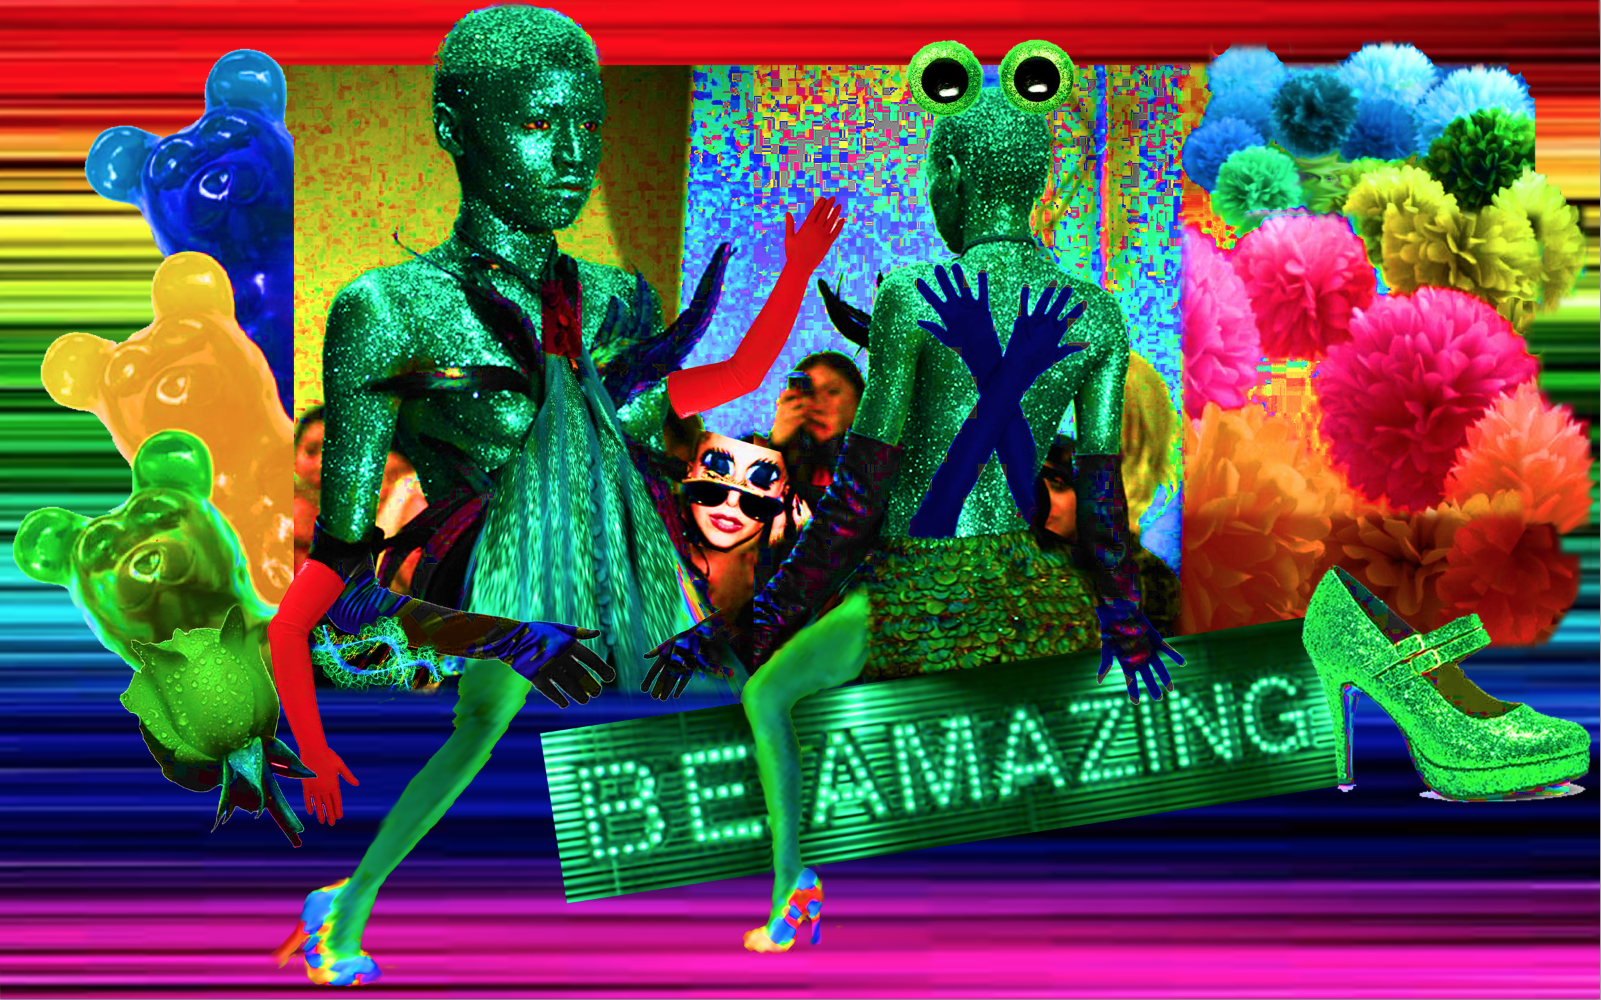 Be Amazing - Sher Love